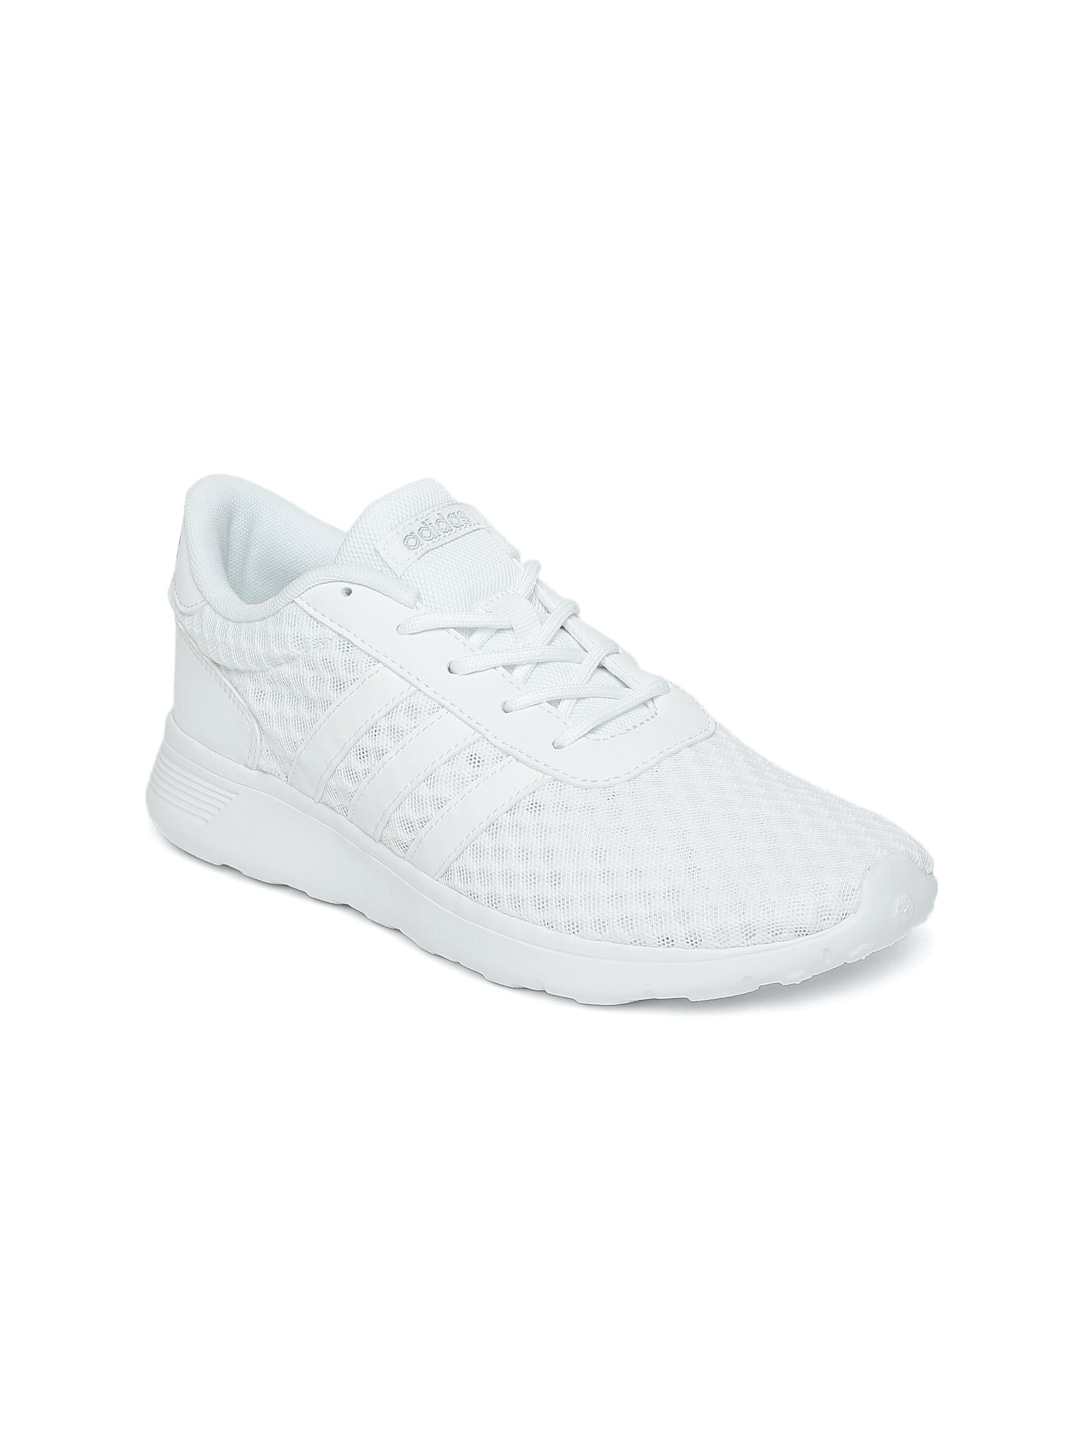 53415cdcc99a Adidas Neo Shoes - Buy Adidas Neo Shoes online in India